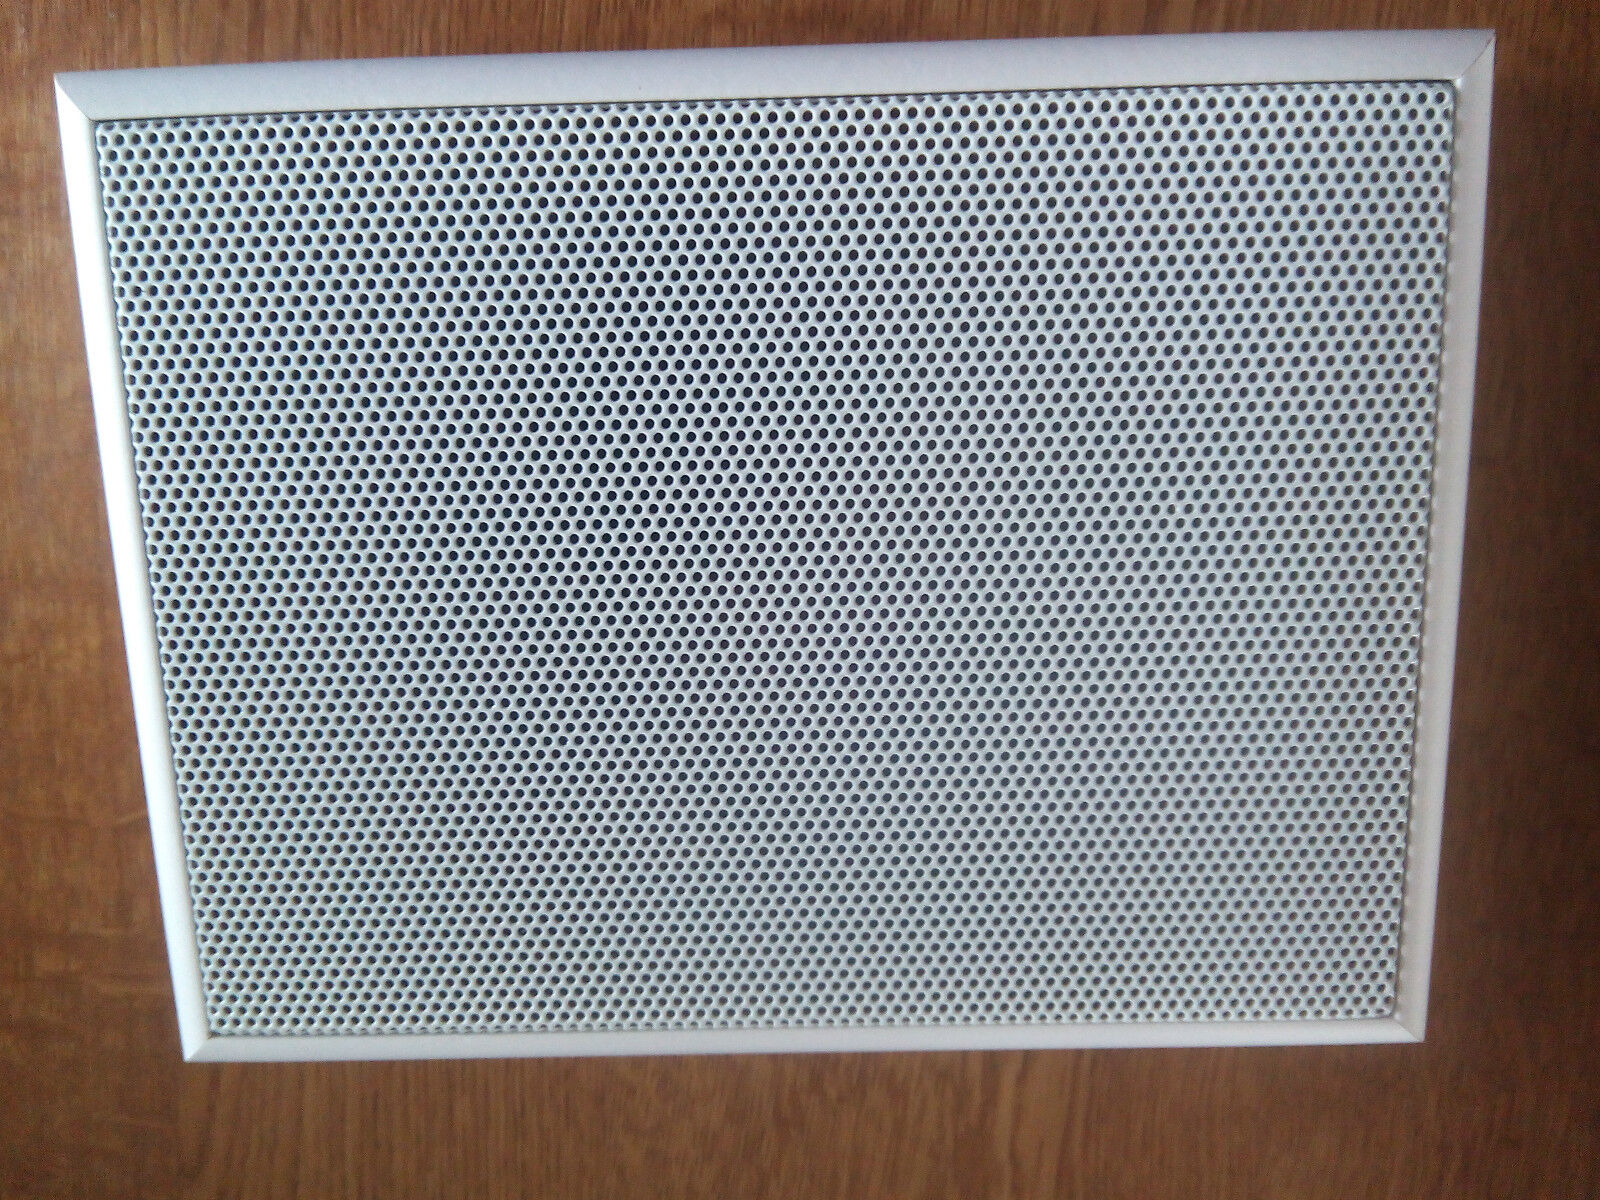 IC Audio WA-AB 06-100 T-EN54 Wall Mounted Speaker